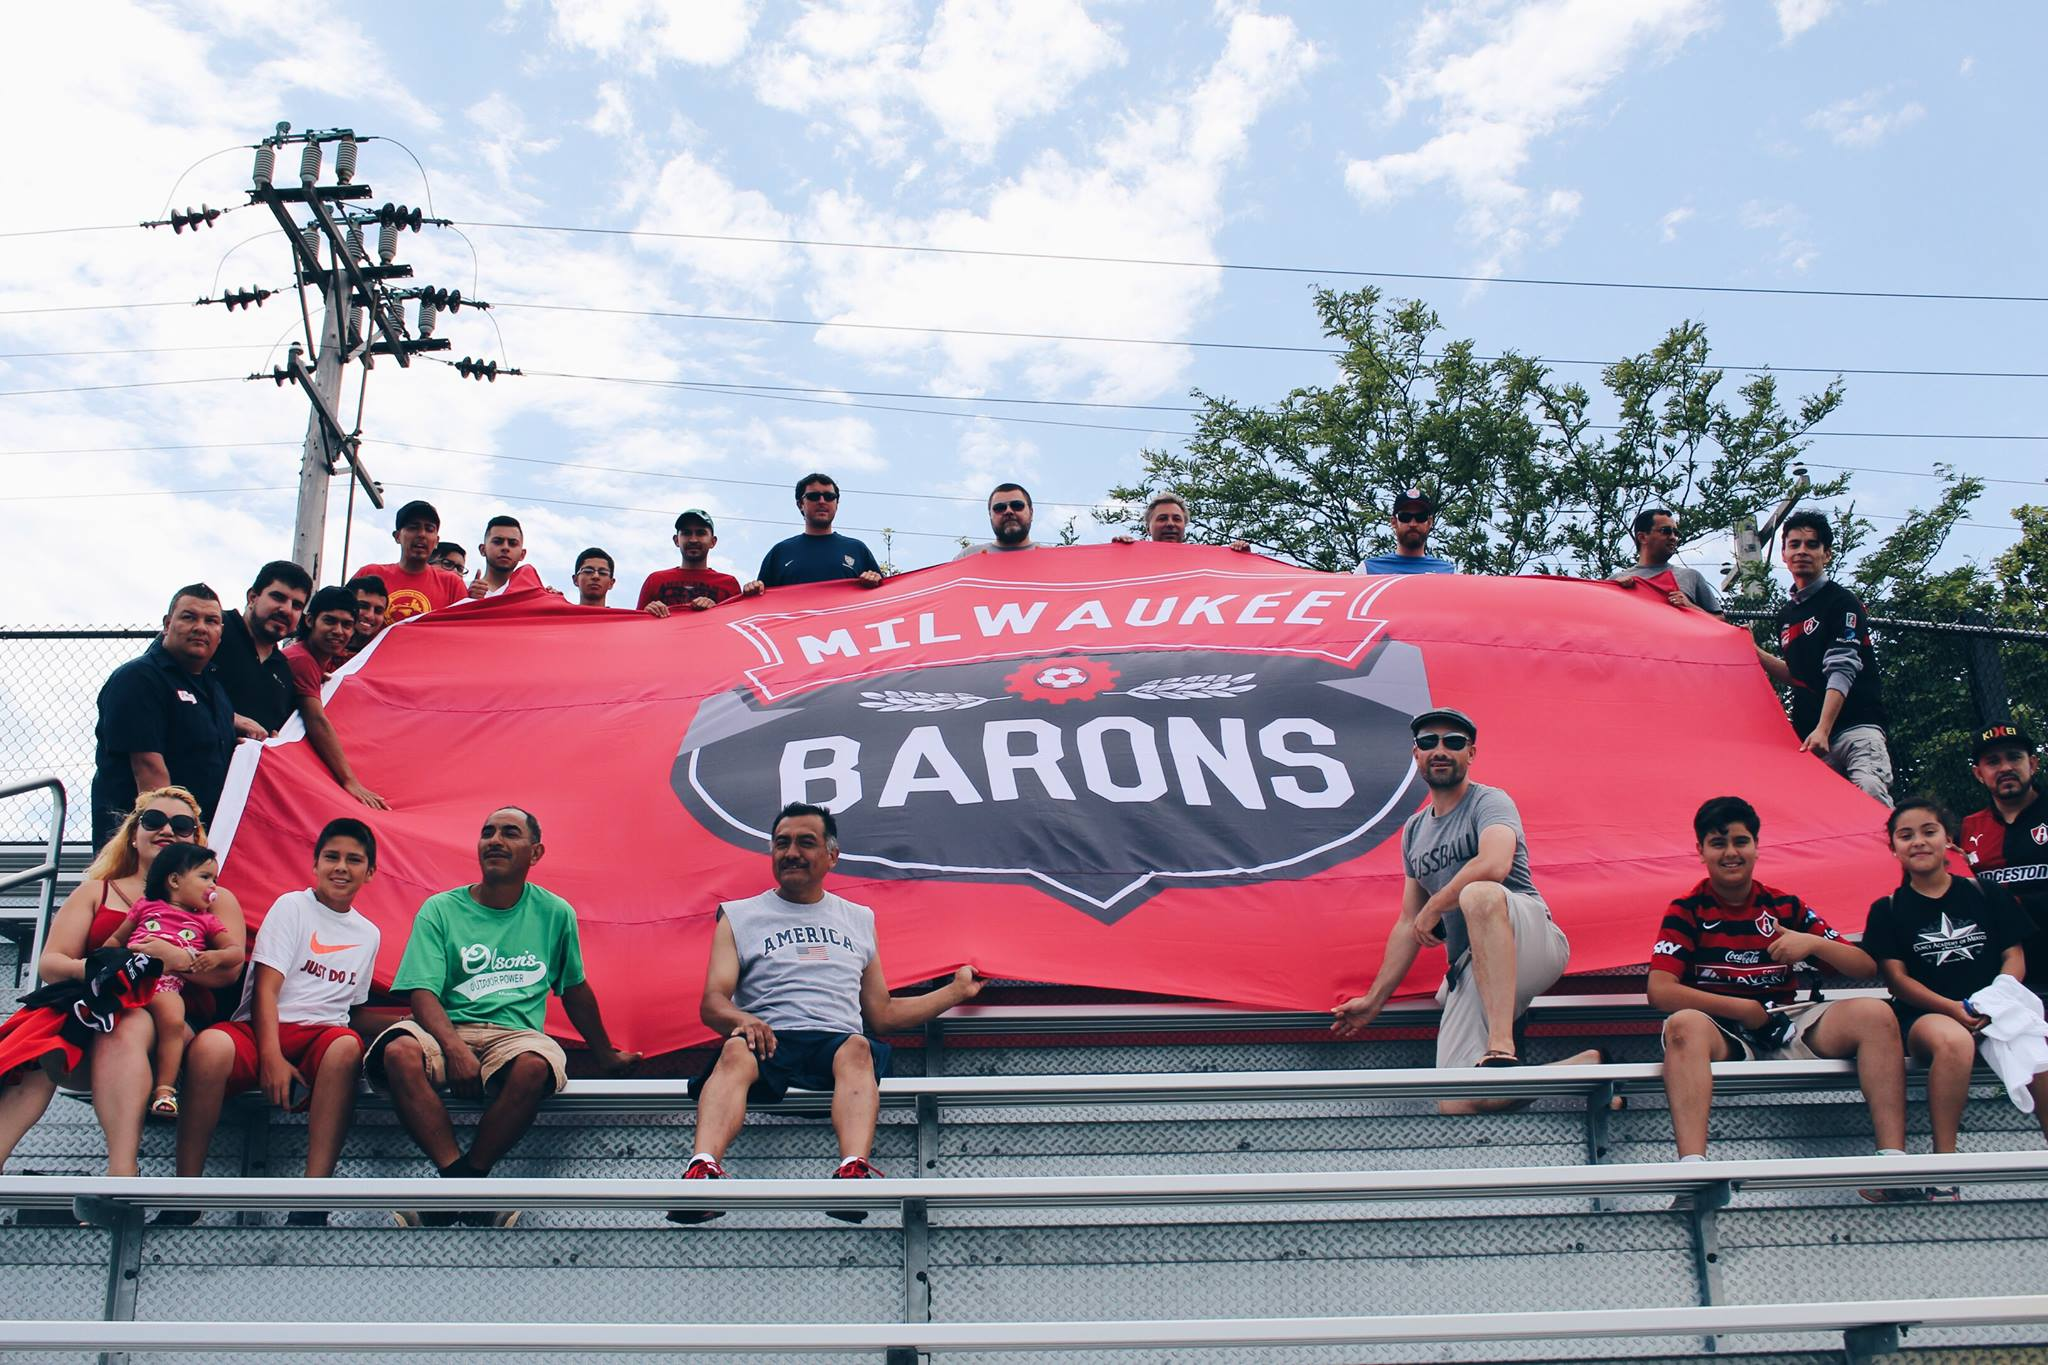 Milwaukee Barons Flag. Photo from the Milwaukee Soccer Development Group.